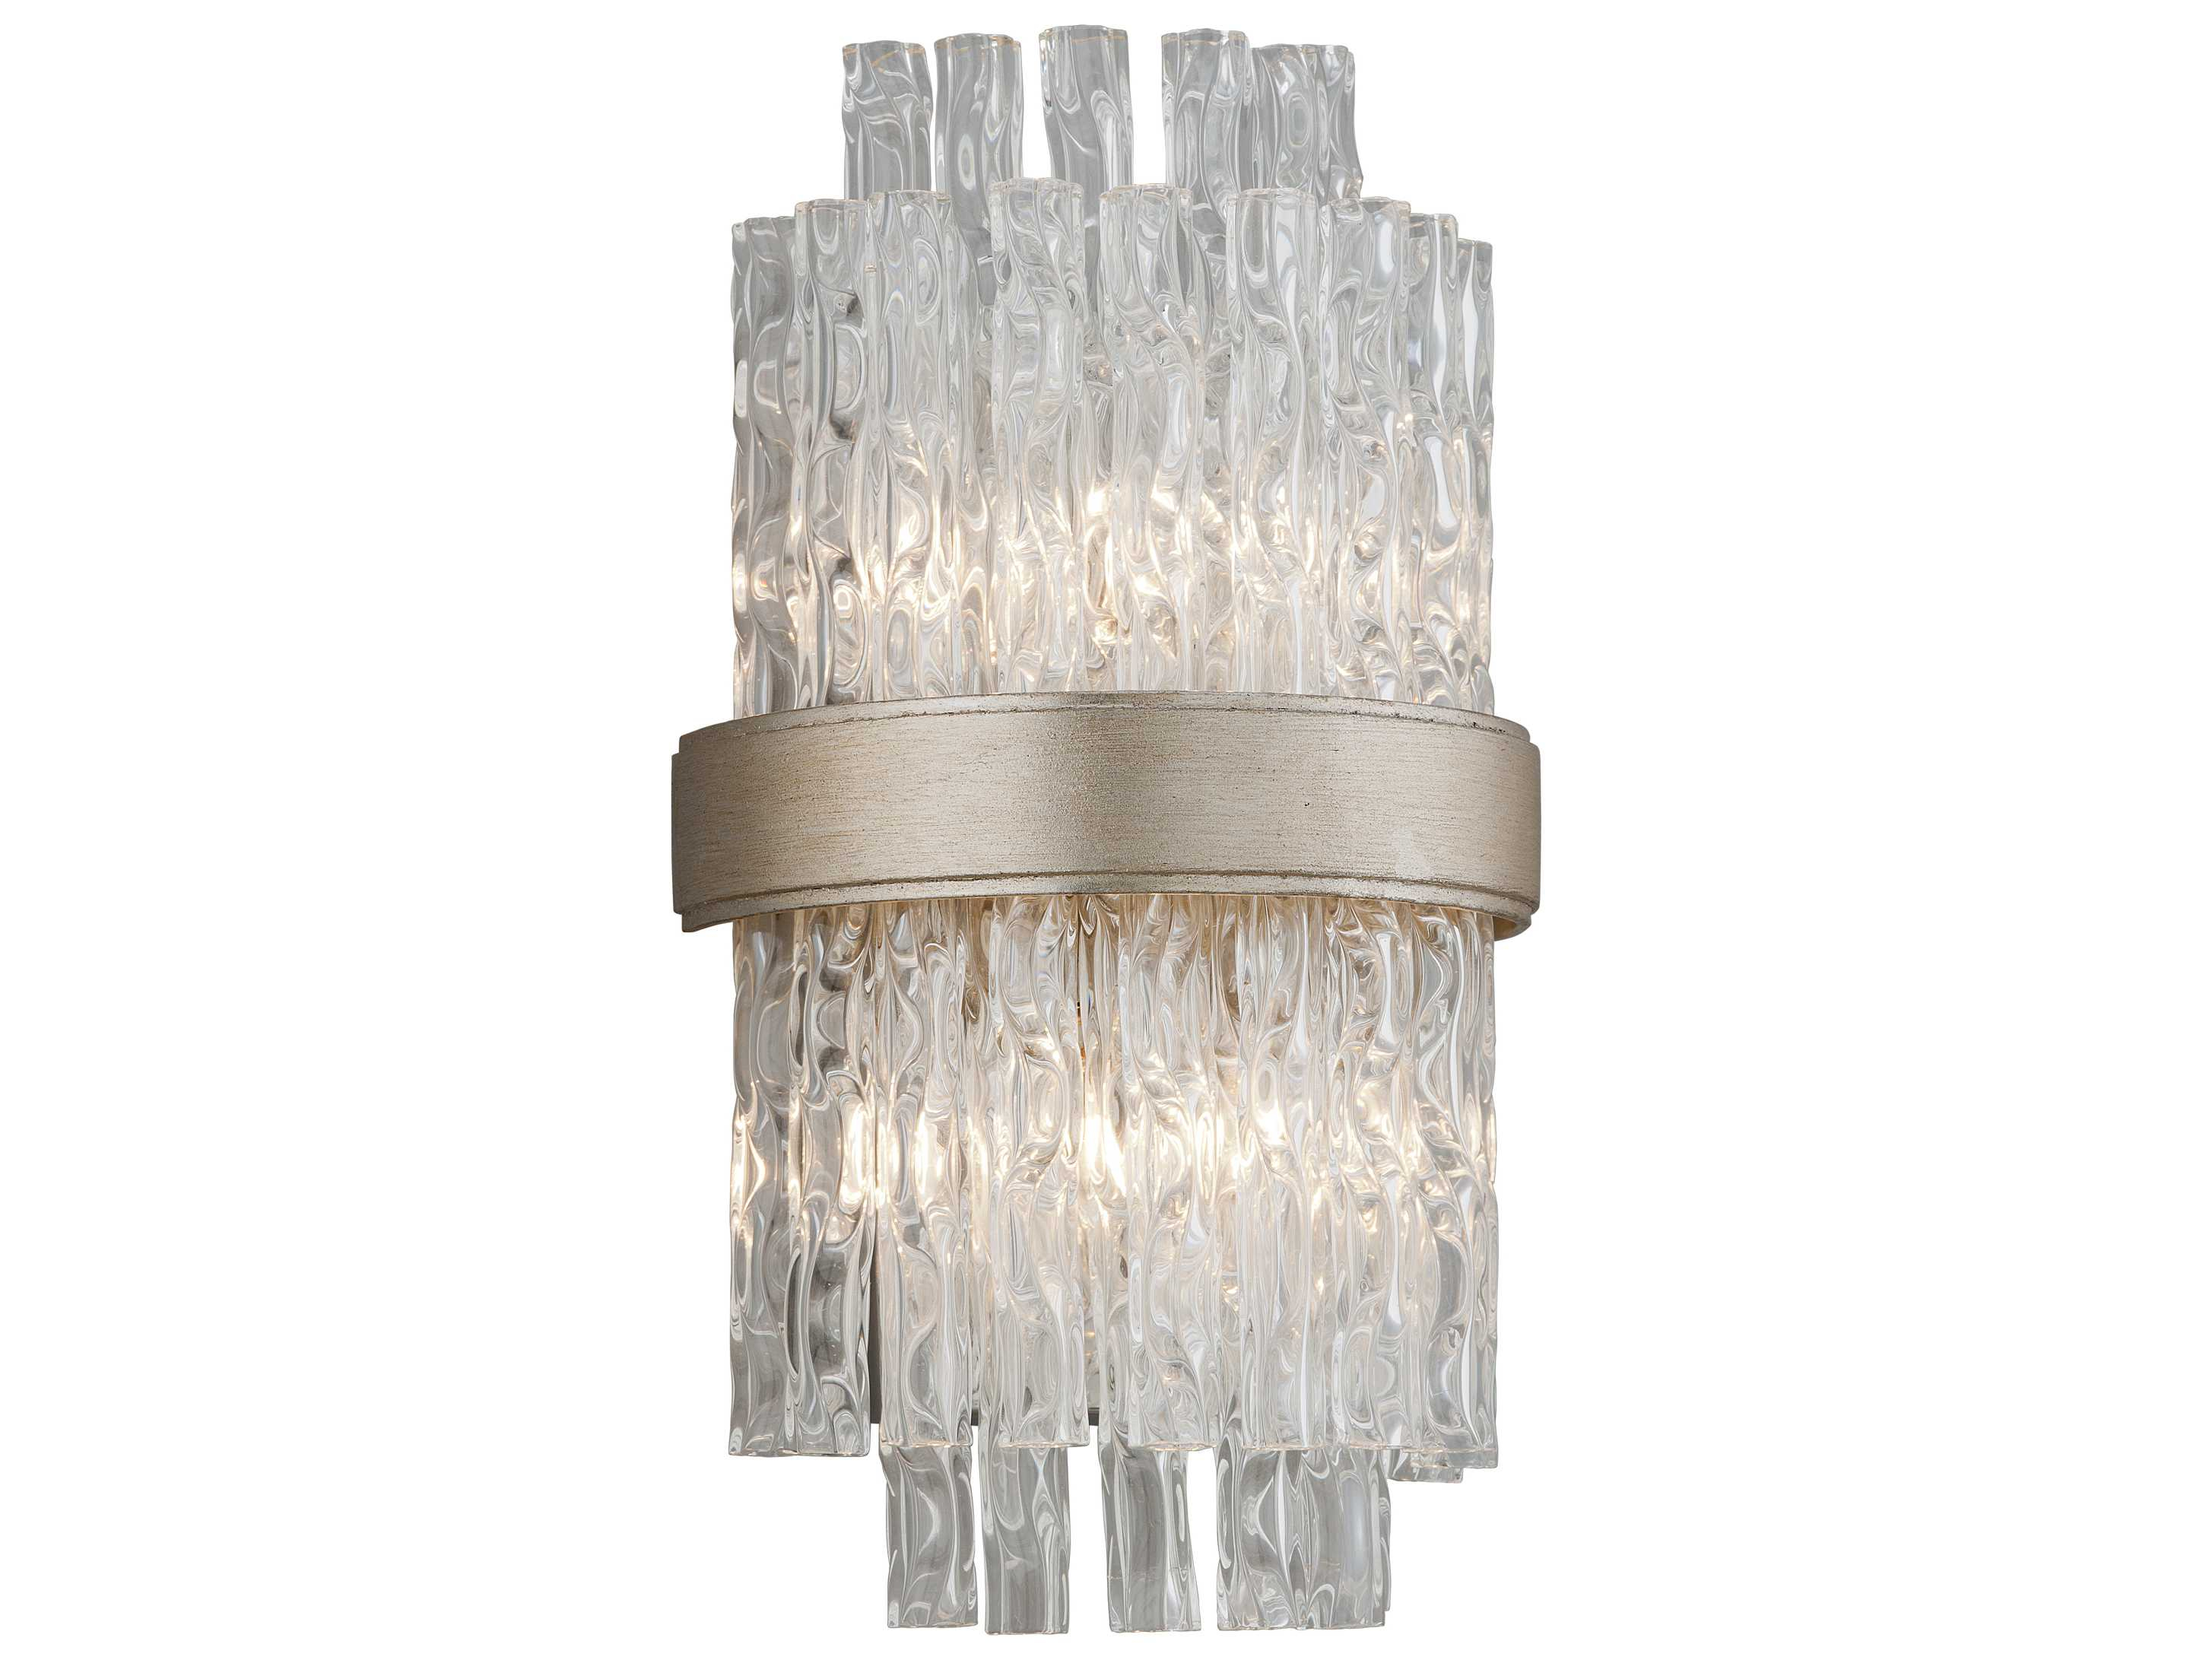 Corbett Lighting Chime Silver Leaf with Polished Stainless Accents Two-Light Wall Sconce CT20412